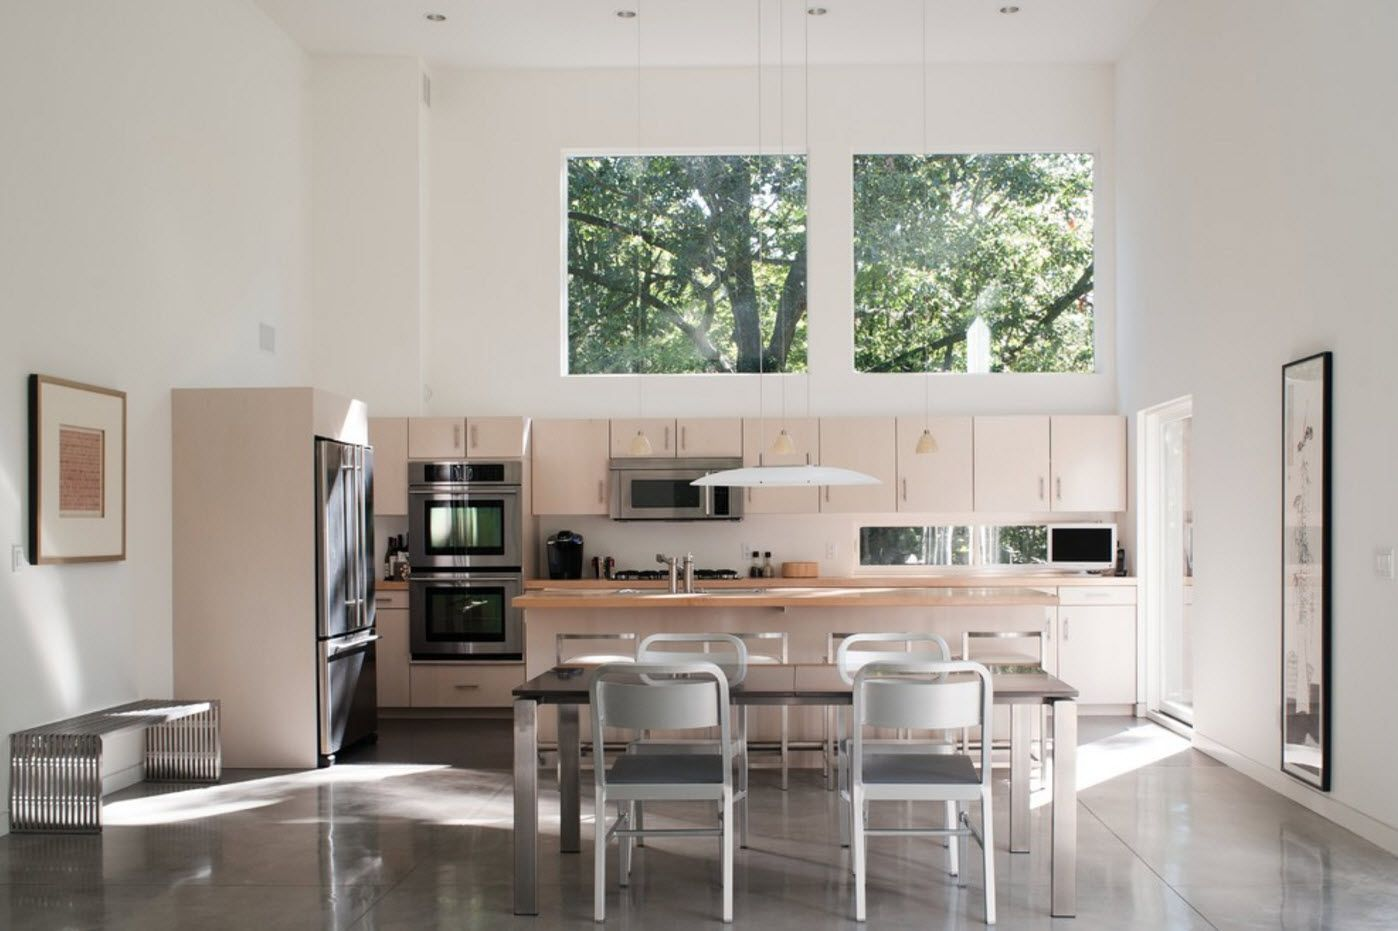 100+ Photo Design Ideas of Modern, Comfortable IKEA Kitchens. White and pastel bottom mix of colors